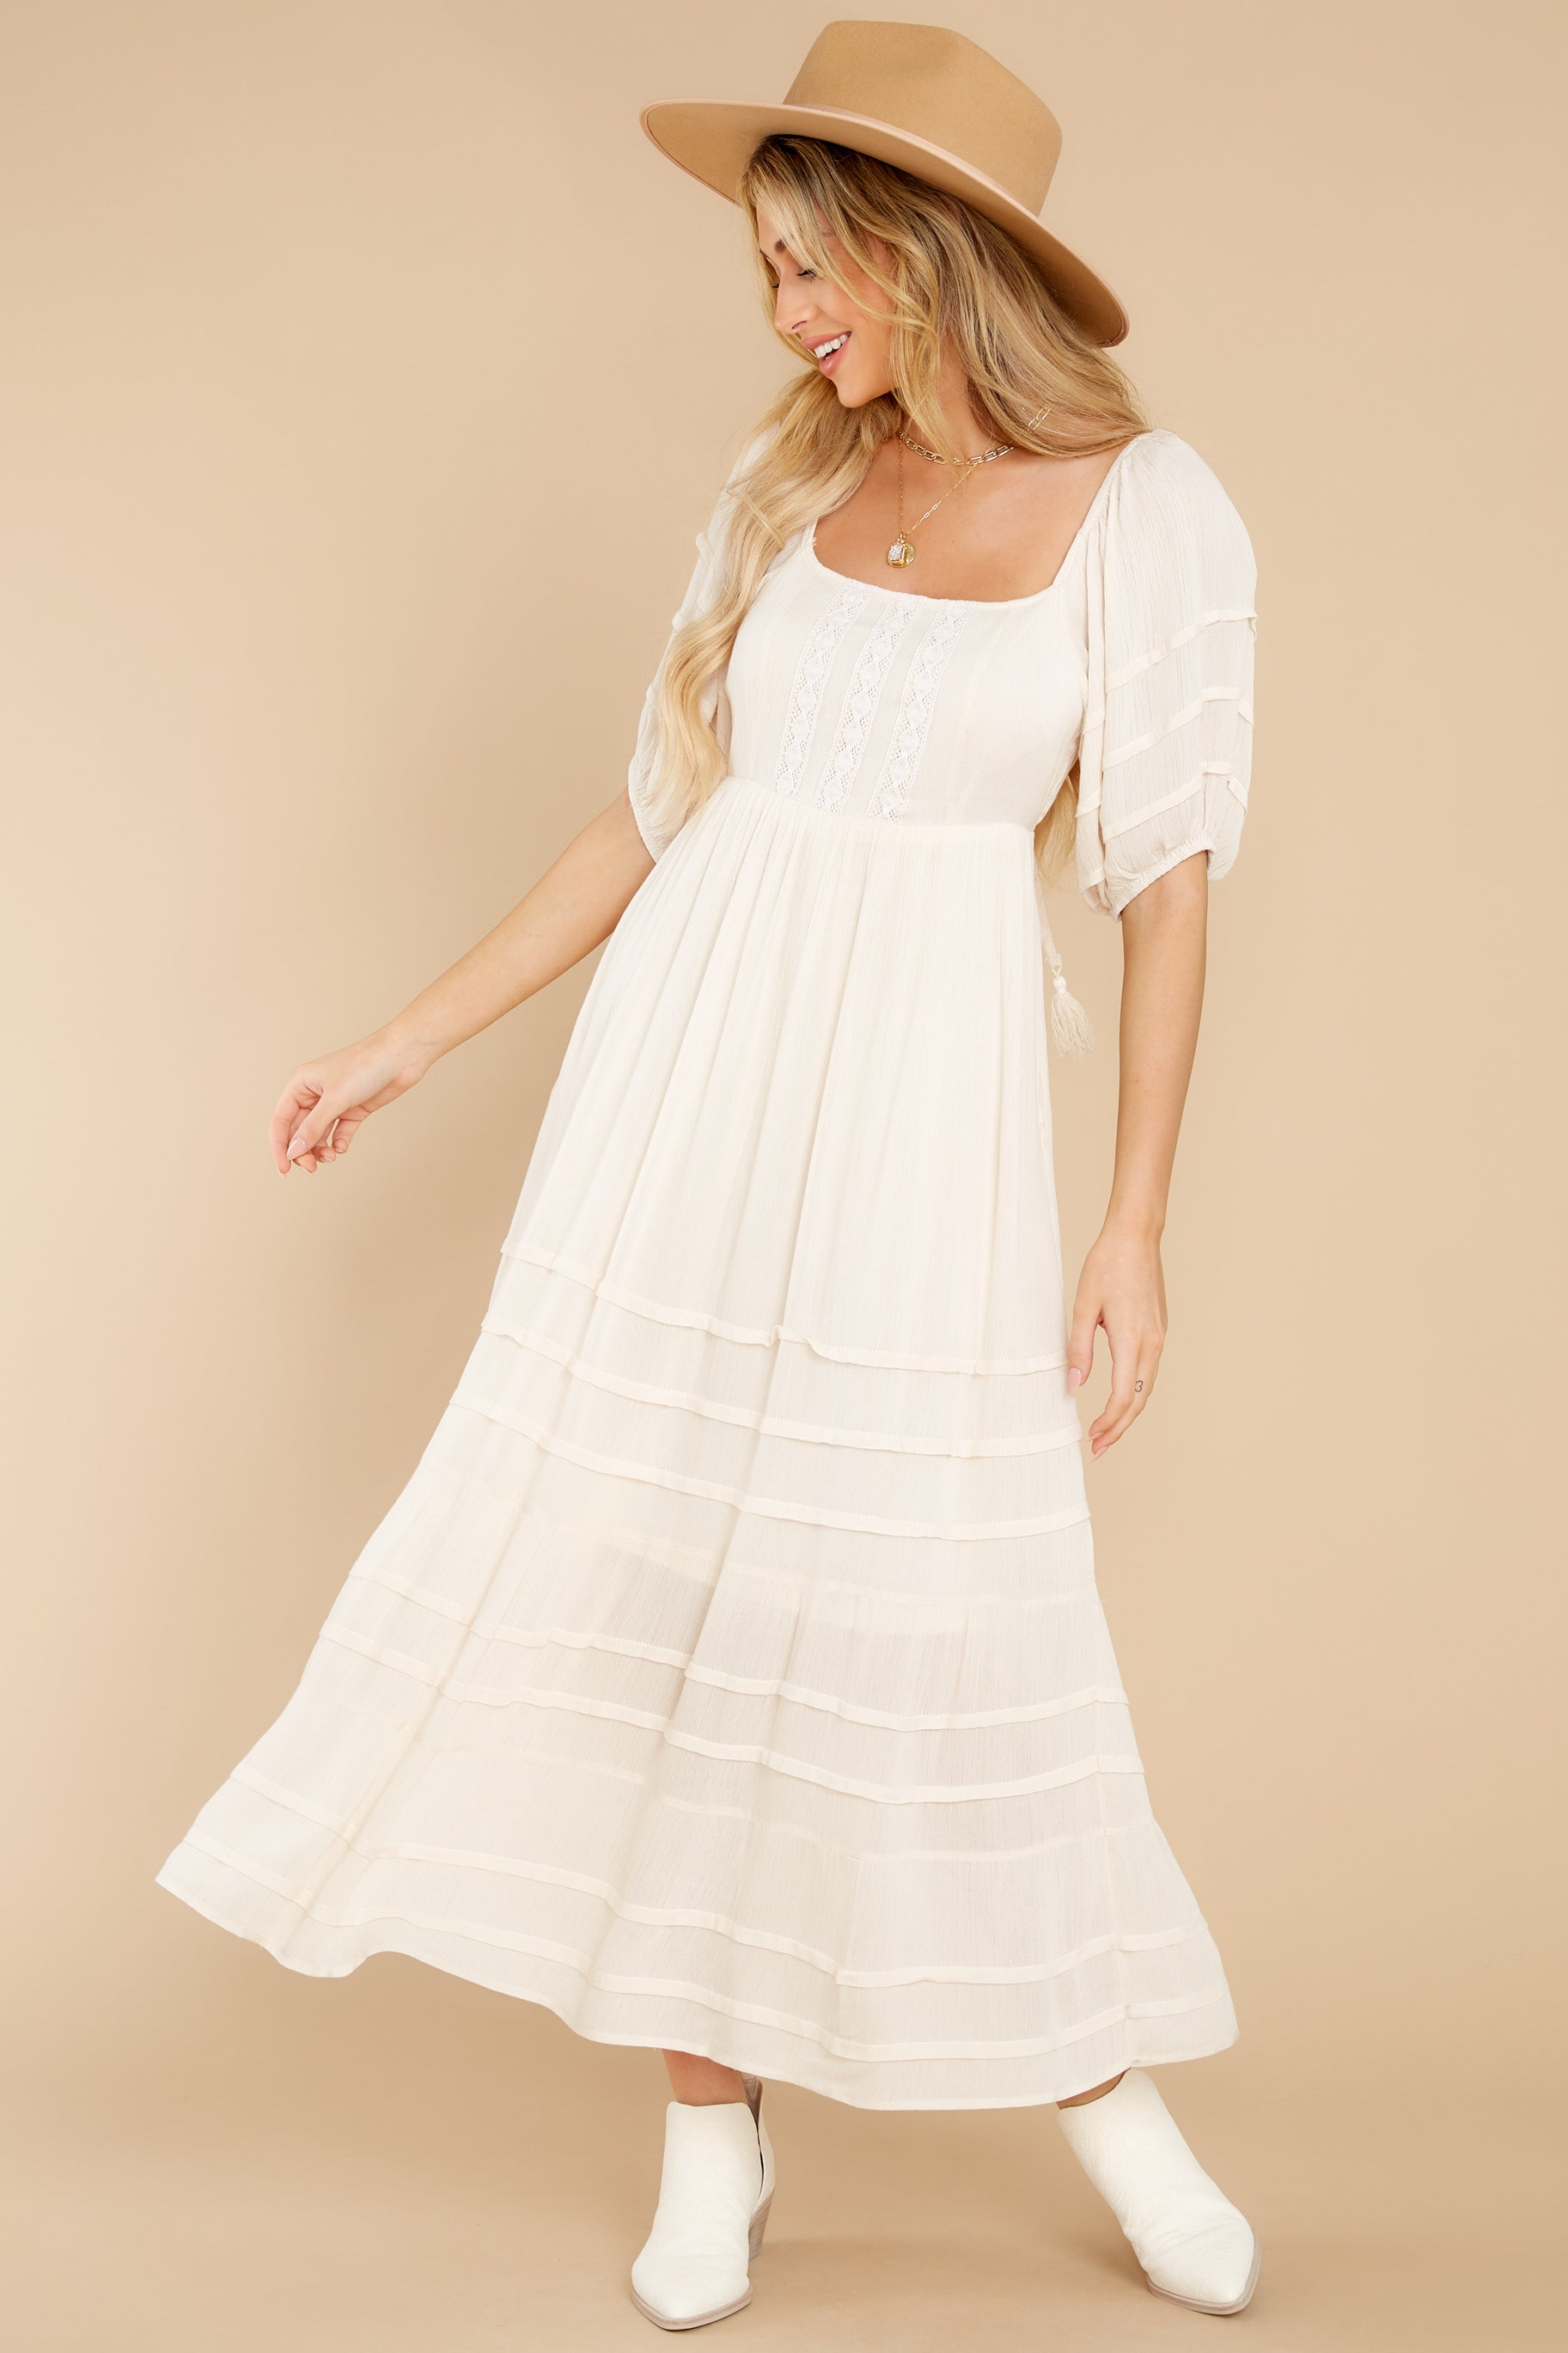 6 Long Way Around Ivory Maxi Dress at reddress.com